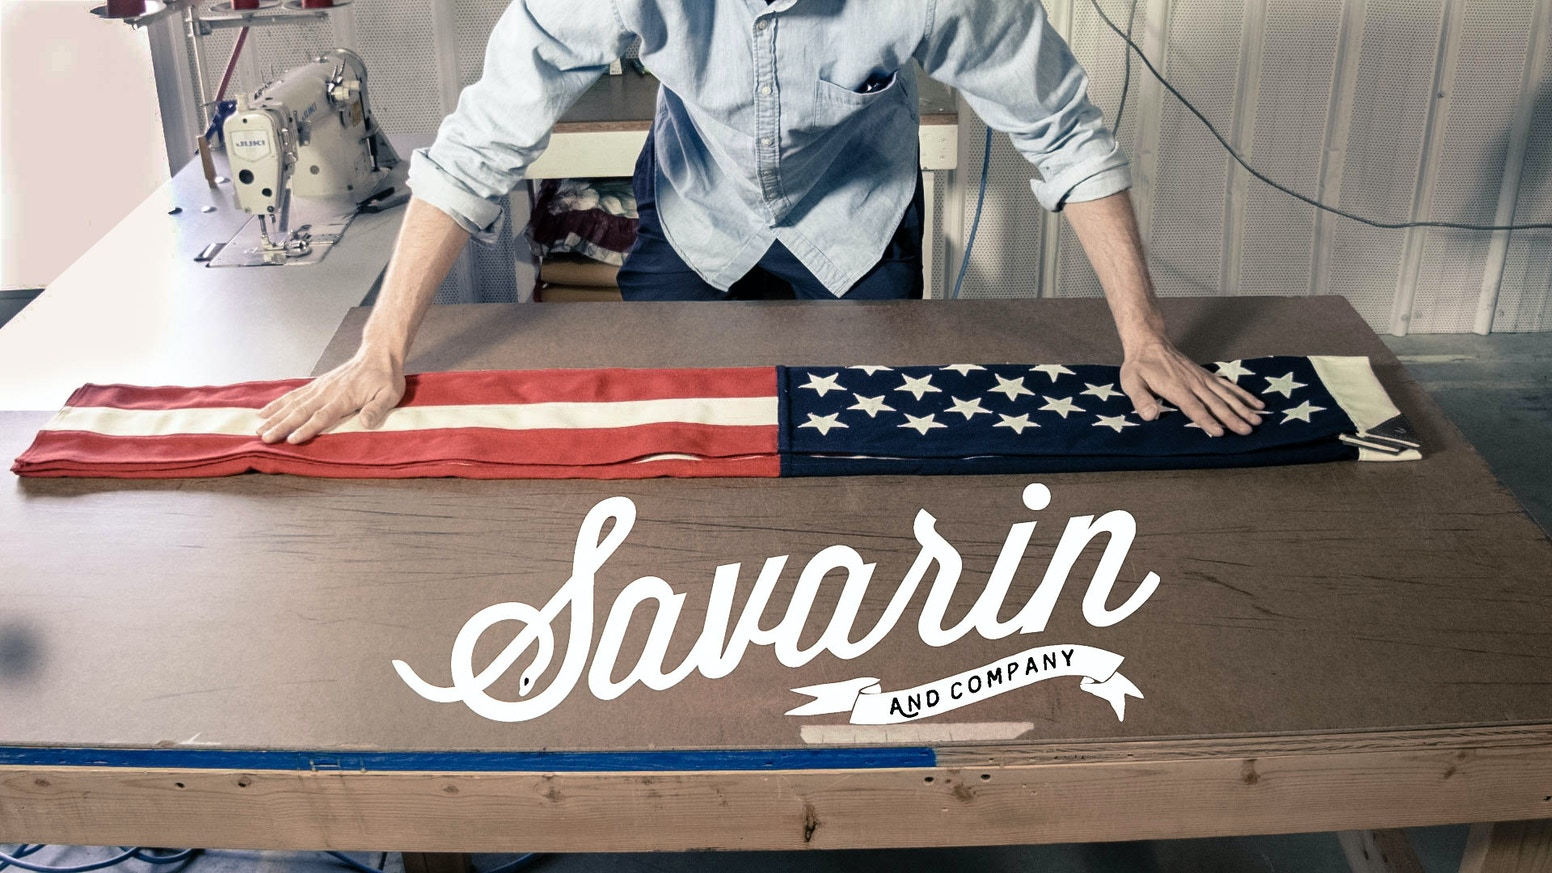 Savarin & Co. are makers of wool American flags. We craft each flag by hand in Ohio using the finest wool from Woolwich, Pennsylvania.